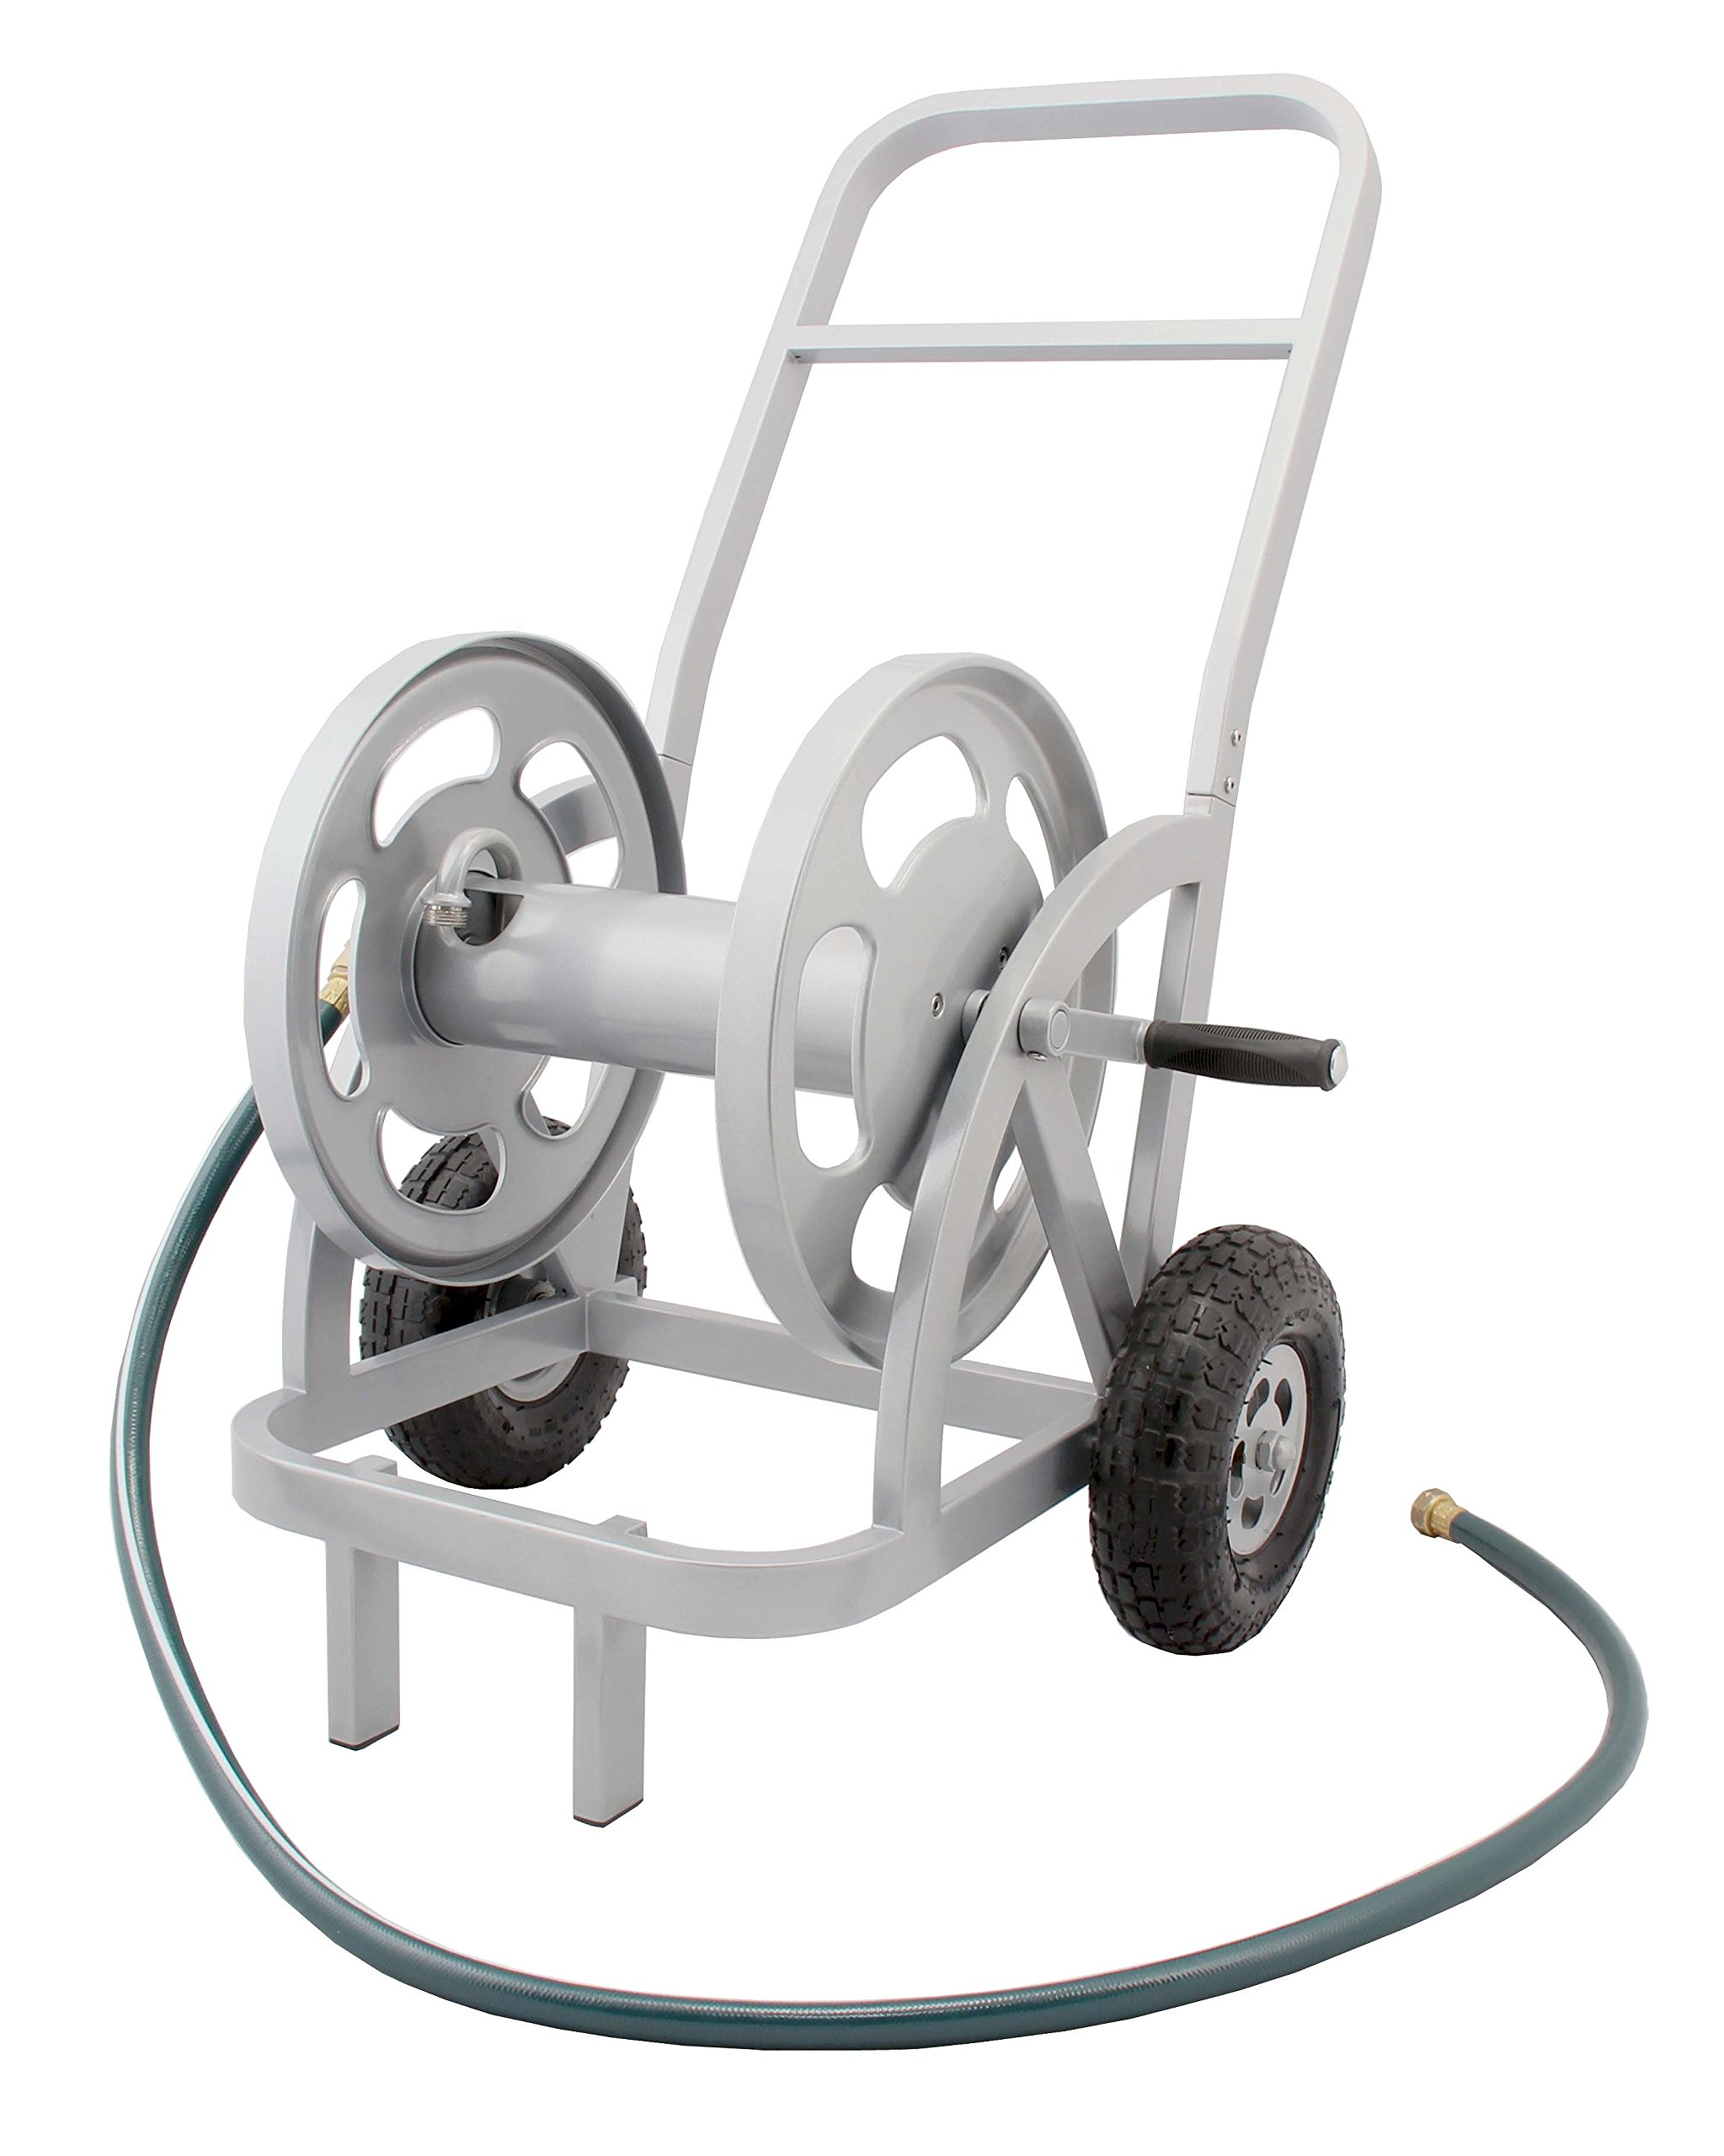 Liberty Garden Products 1200 Silver 2-Wheel Garden Hose Reel Cart, Holds 200-Feet of 5/8-Inch Hose by Liberty Garden Products